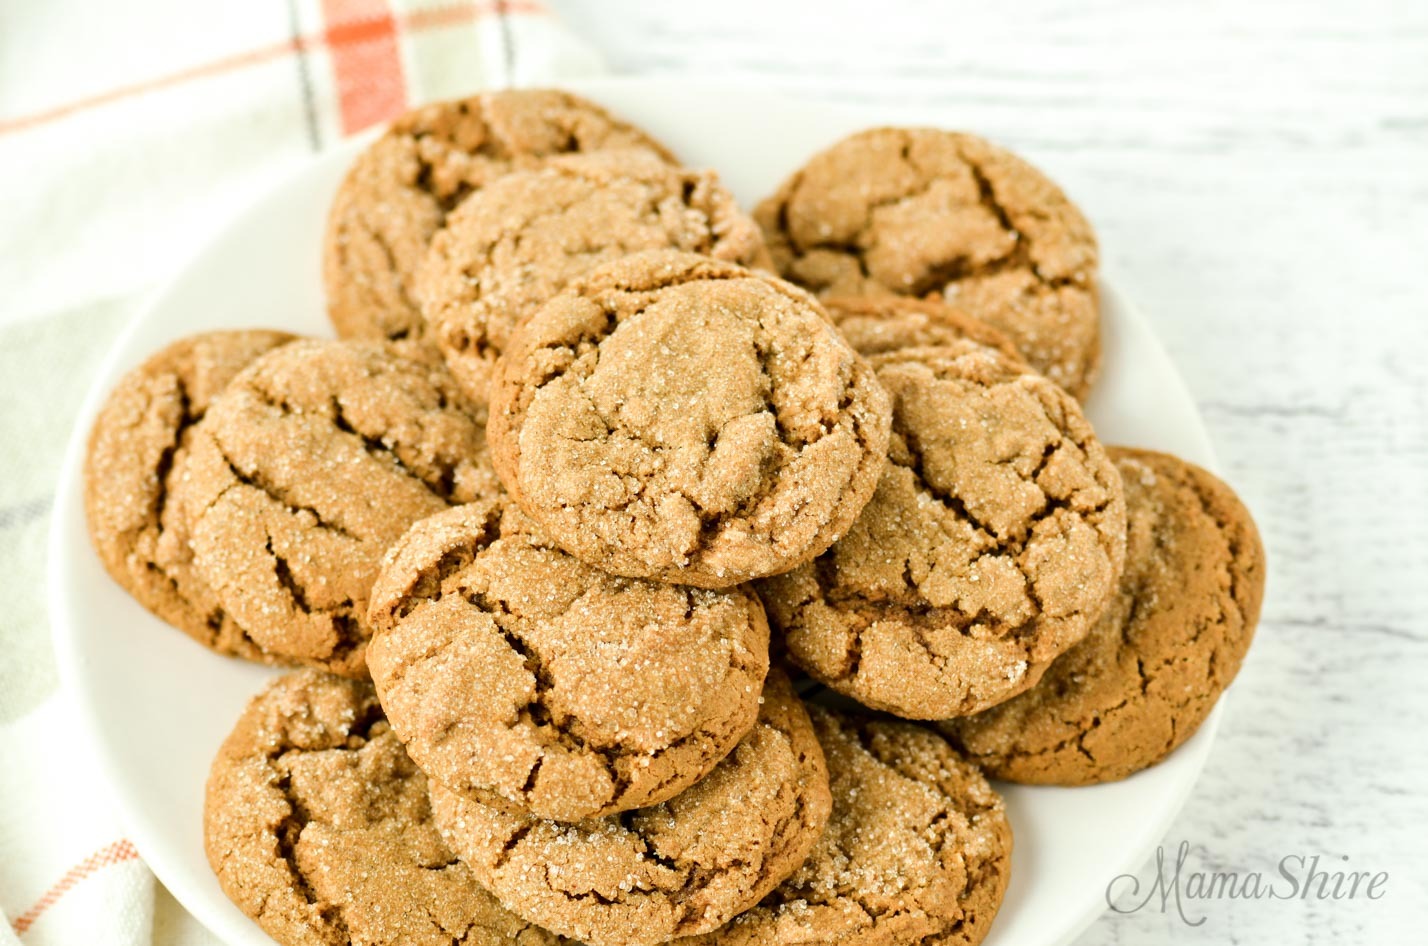 A plate of gluten-free soft molasses cookies.